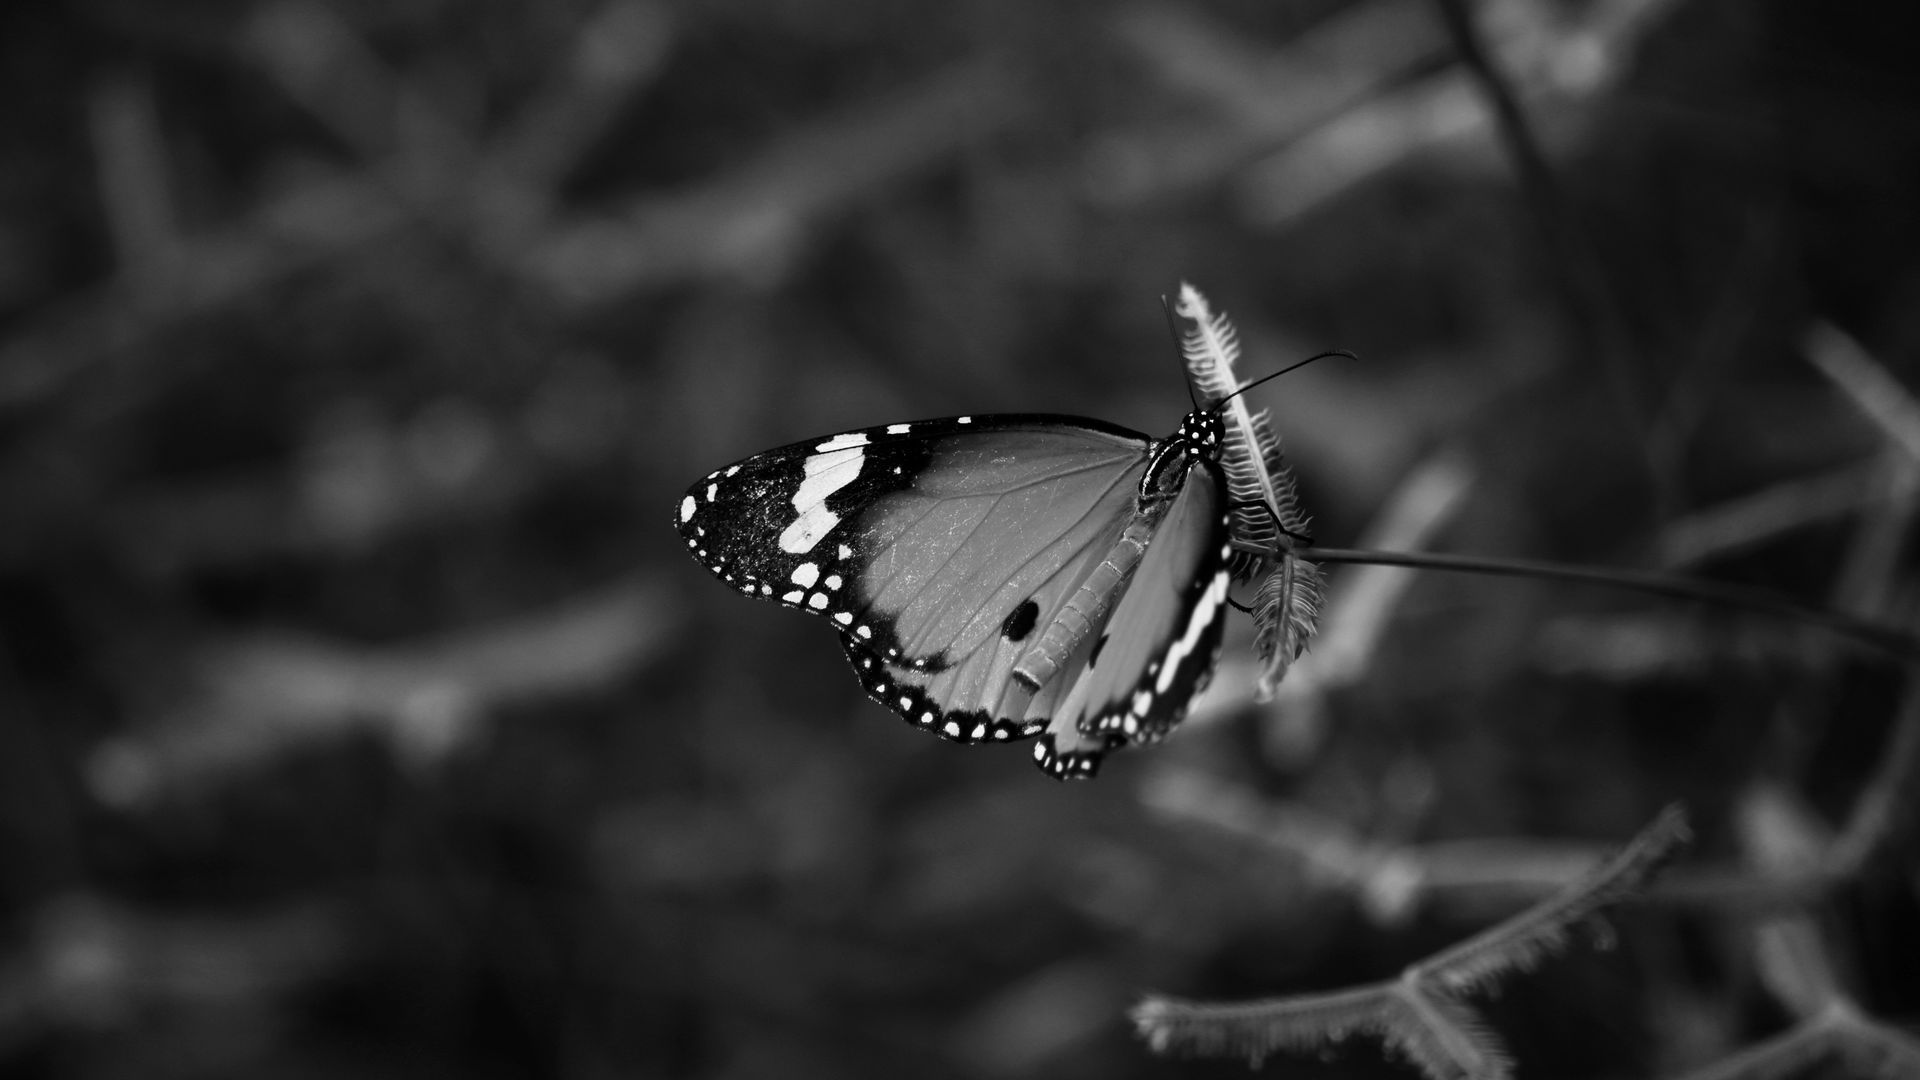 Black And White Butterfly Wallpapers Top Free Black And White Butterfly Backgrounds Wallpaperaccess